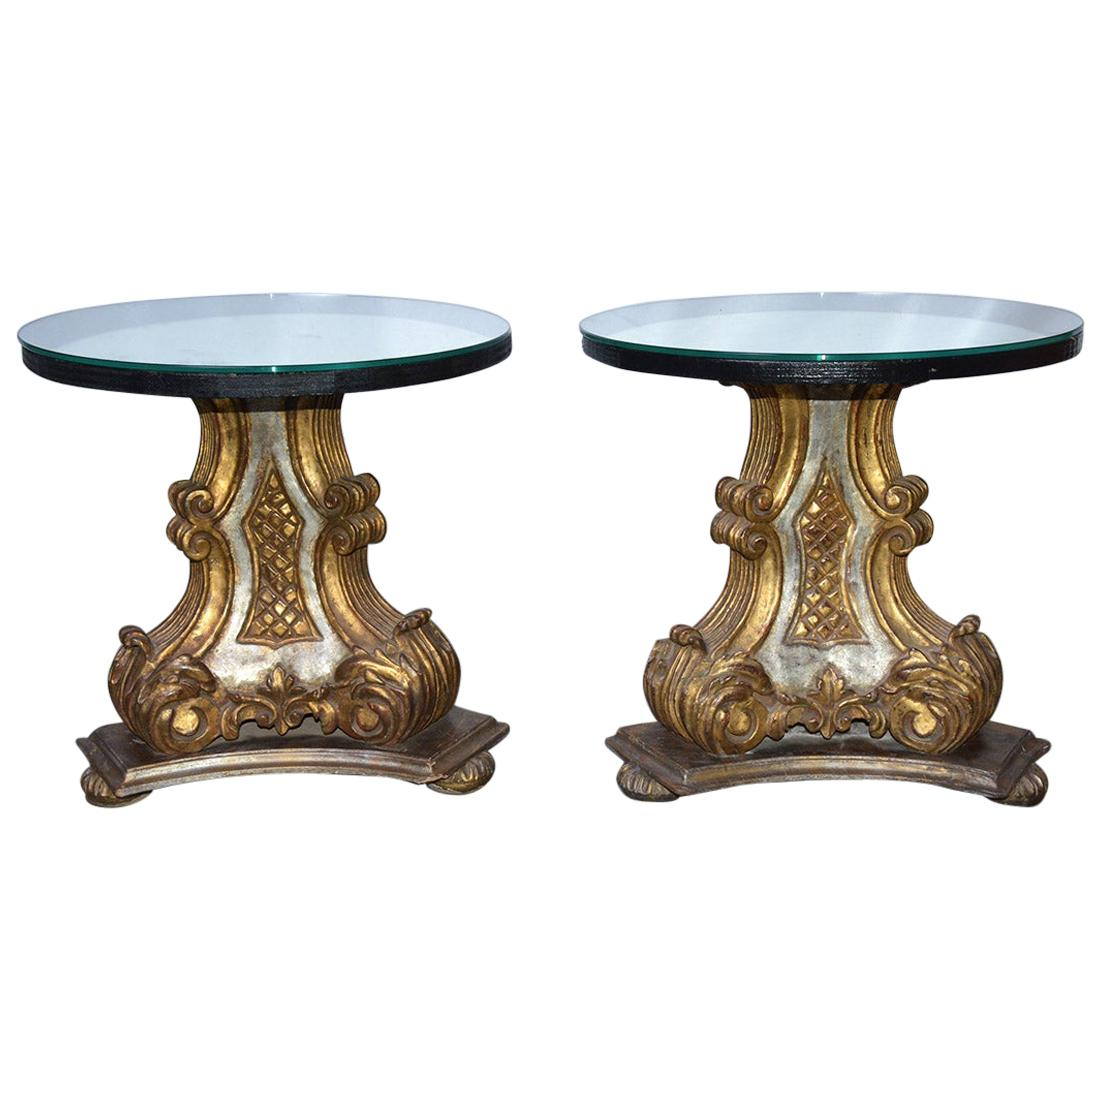 Pair of Vintage Gilt Pedestal Table Bases With Mirrored Top